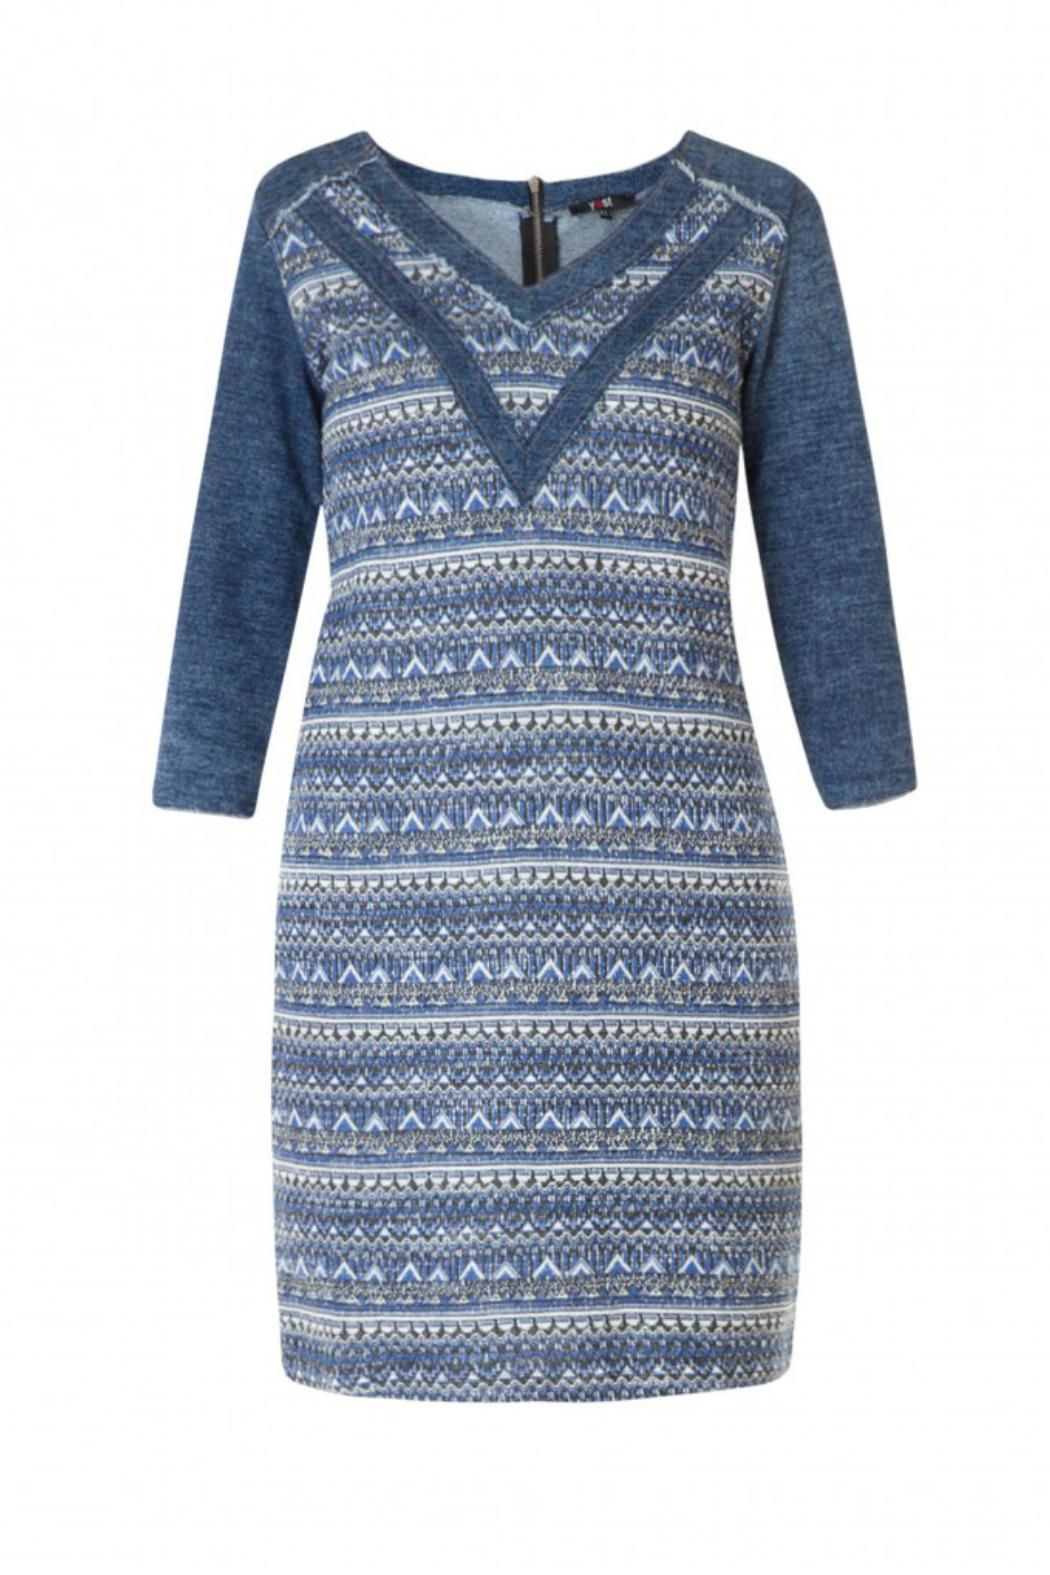 Yest Denim Cotton Dress - Front Cropped Image